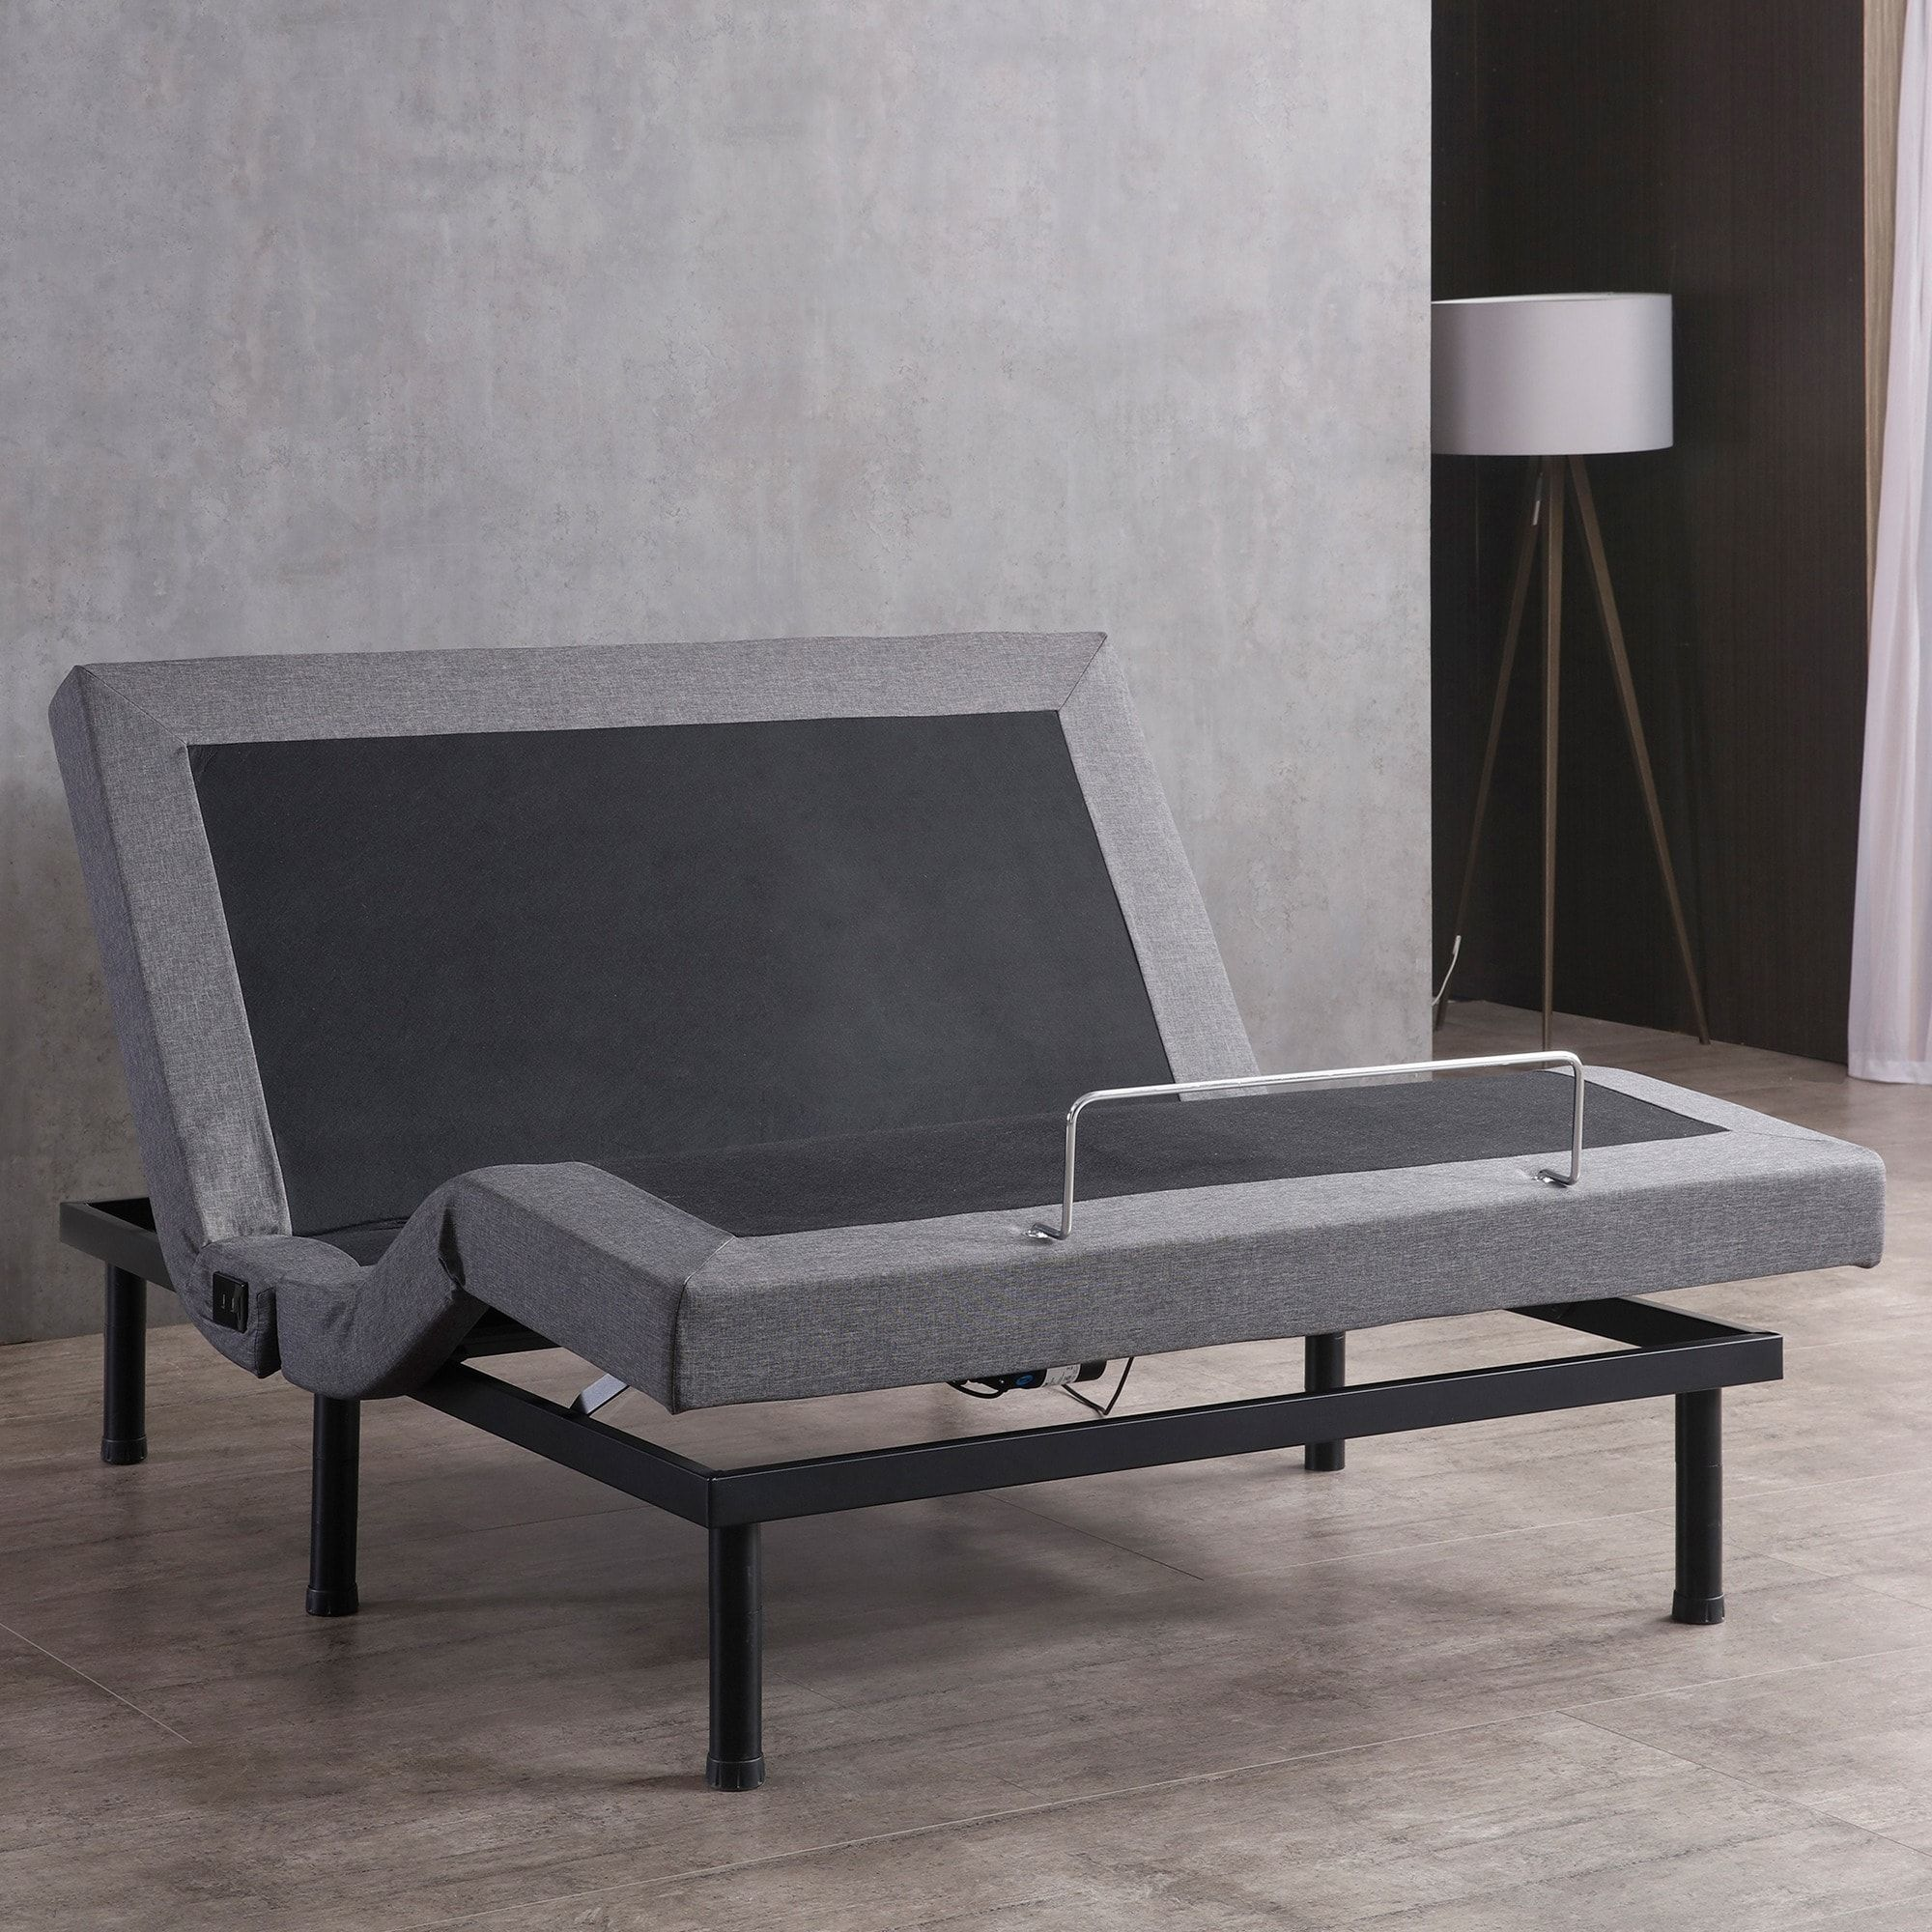 Classic Brands Adjustable Bed Base With Massage Wireless Remote